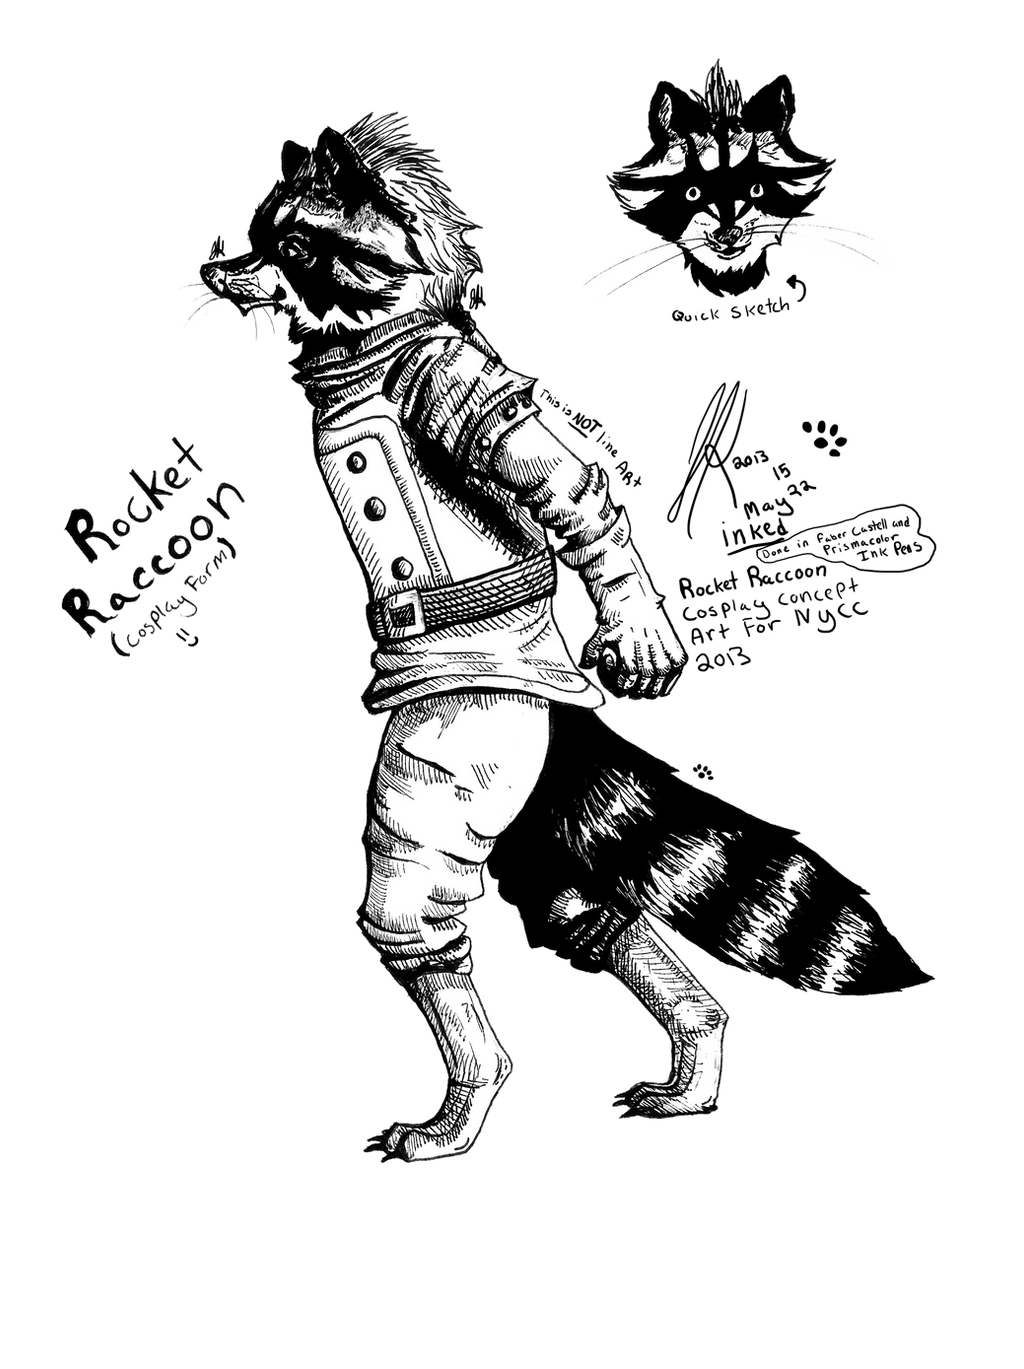 Magnificent Rocket Raccoon Coloring Page Image - Examples ...